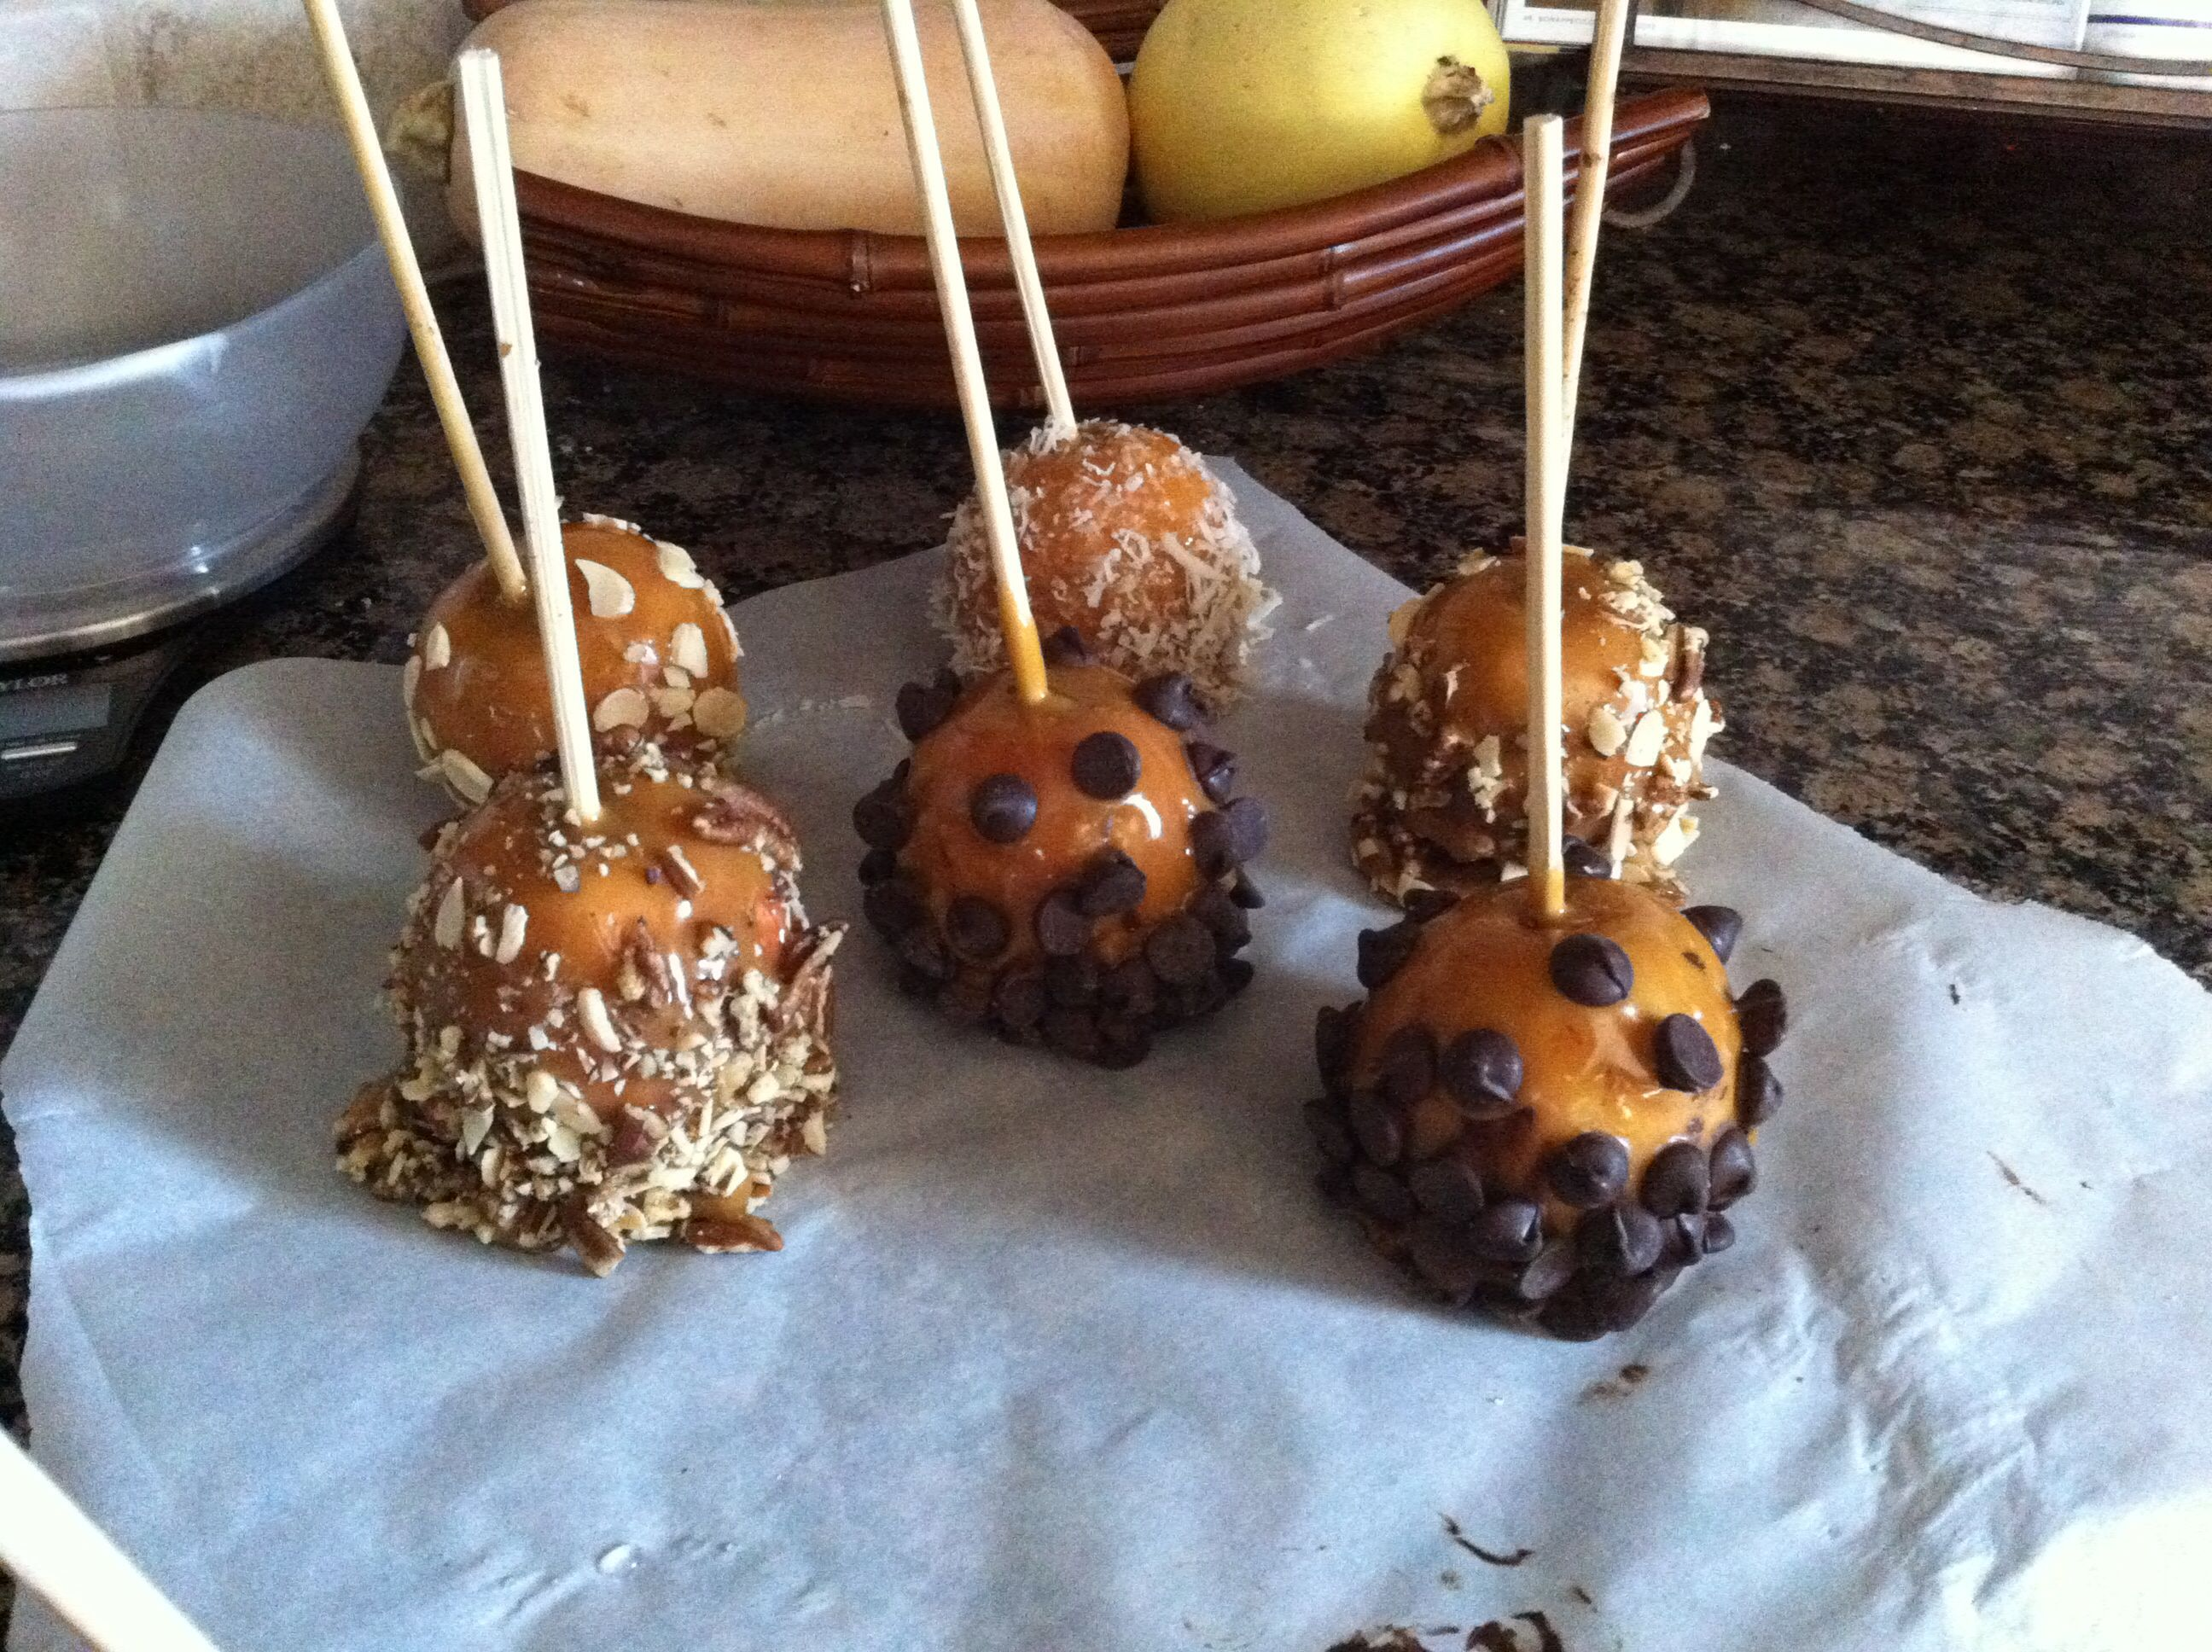 Homemade caramel apples even made the sweetened condensed